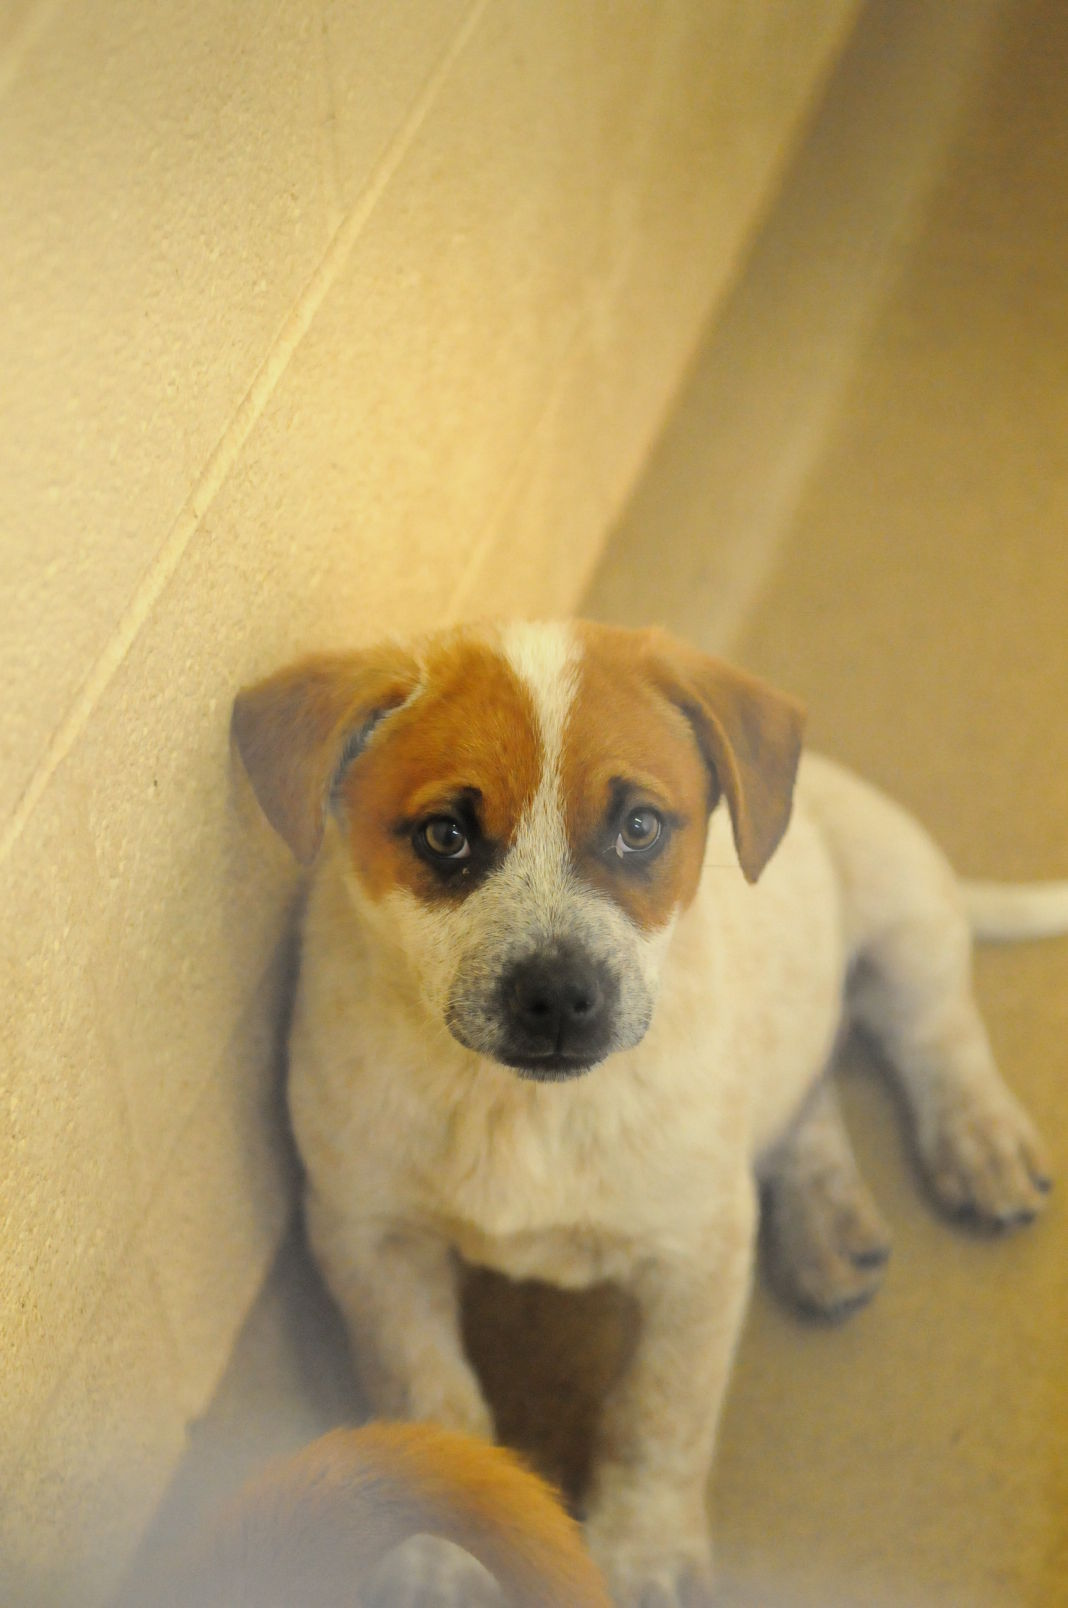 Slideshow: Animals ready for adoption at the Mercer County